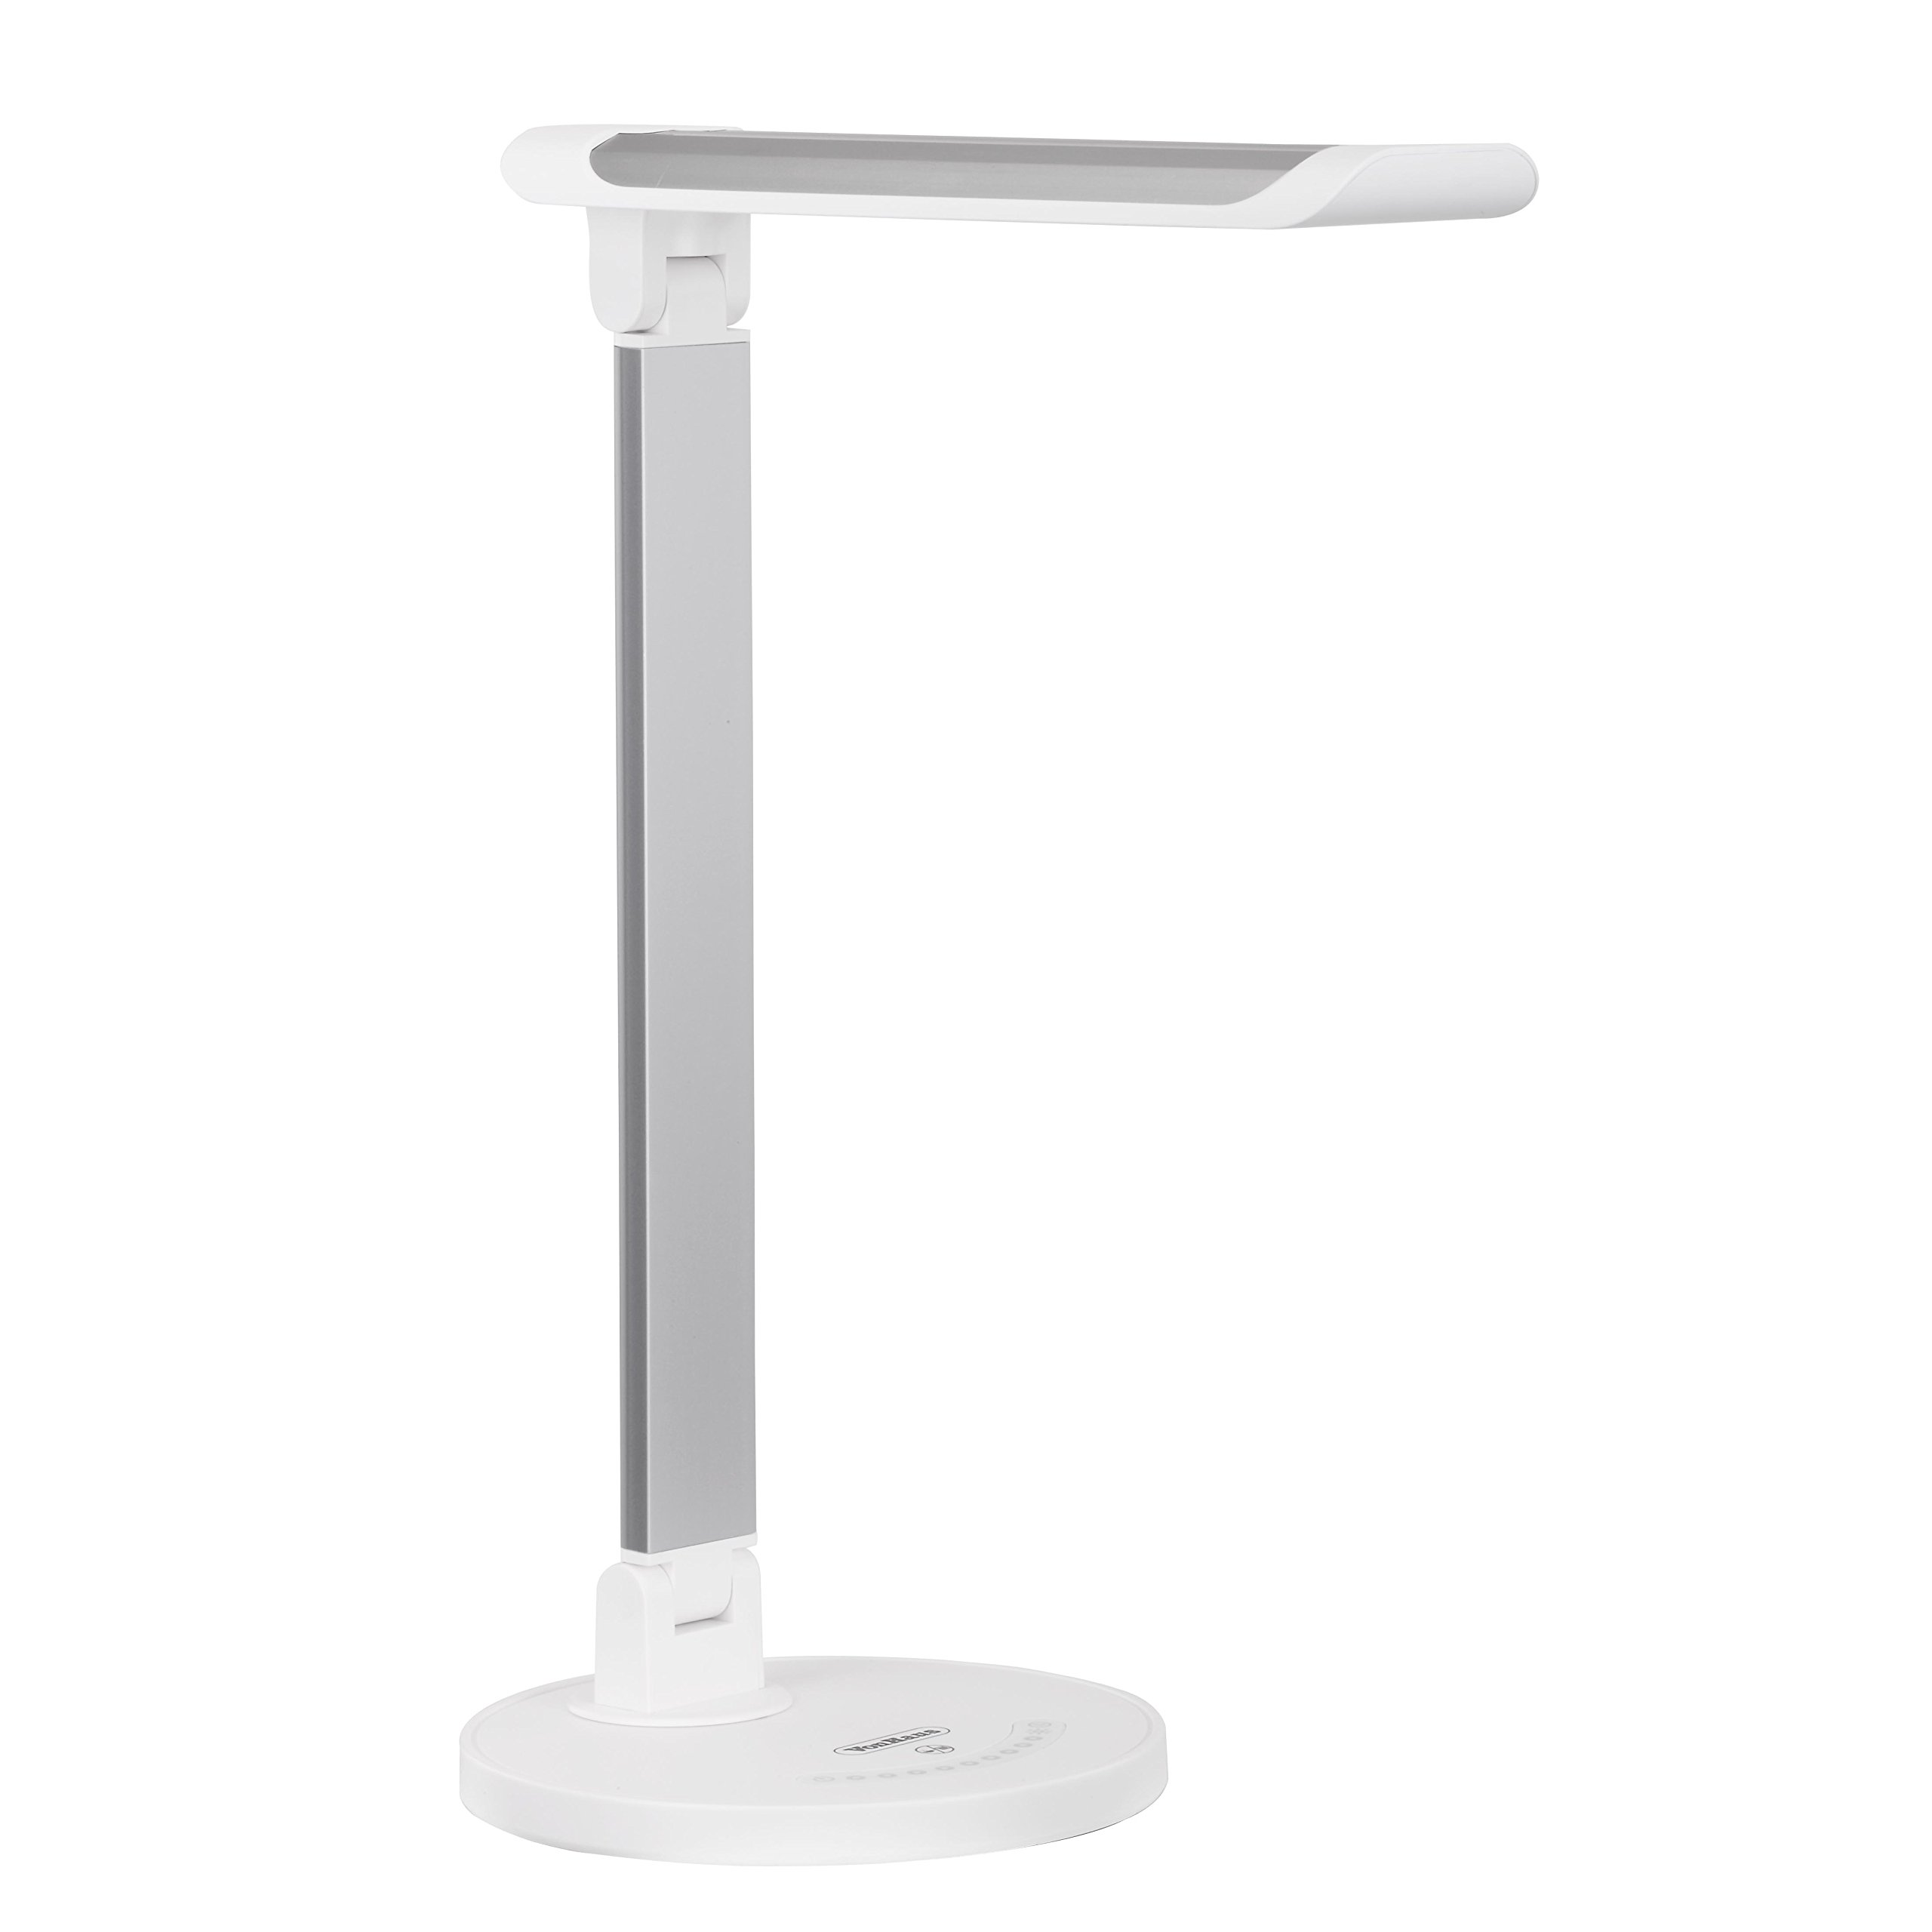 VonHaus LED Desk Lamp - Folding with USB Charger, 7 Level Dimmer, Touch Control and Timer - Aluminum Hobby Lamp, Bedroom, Office or Table Light